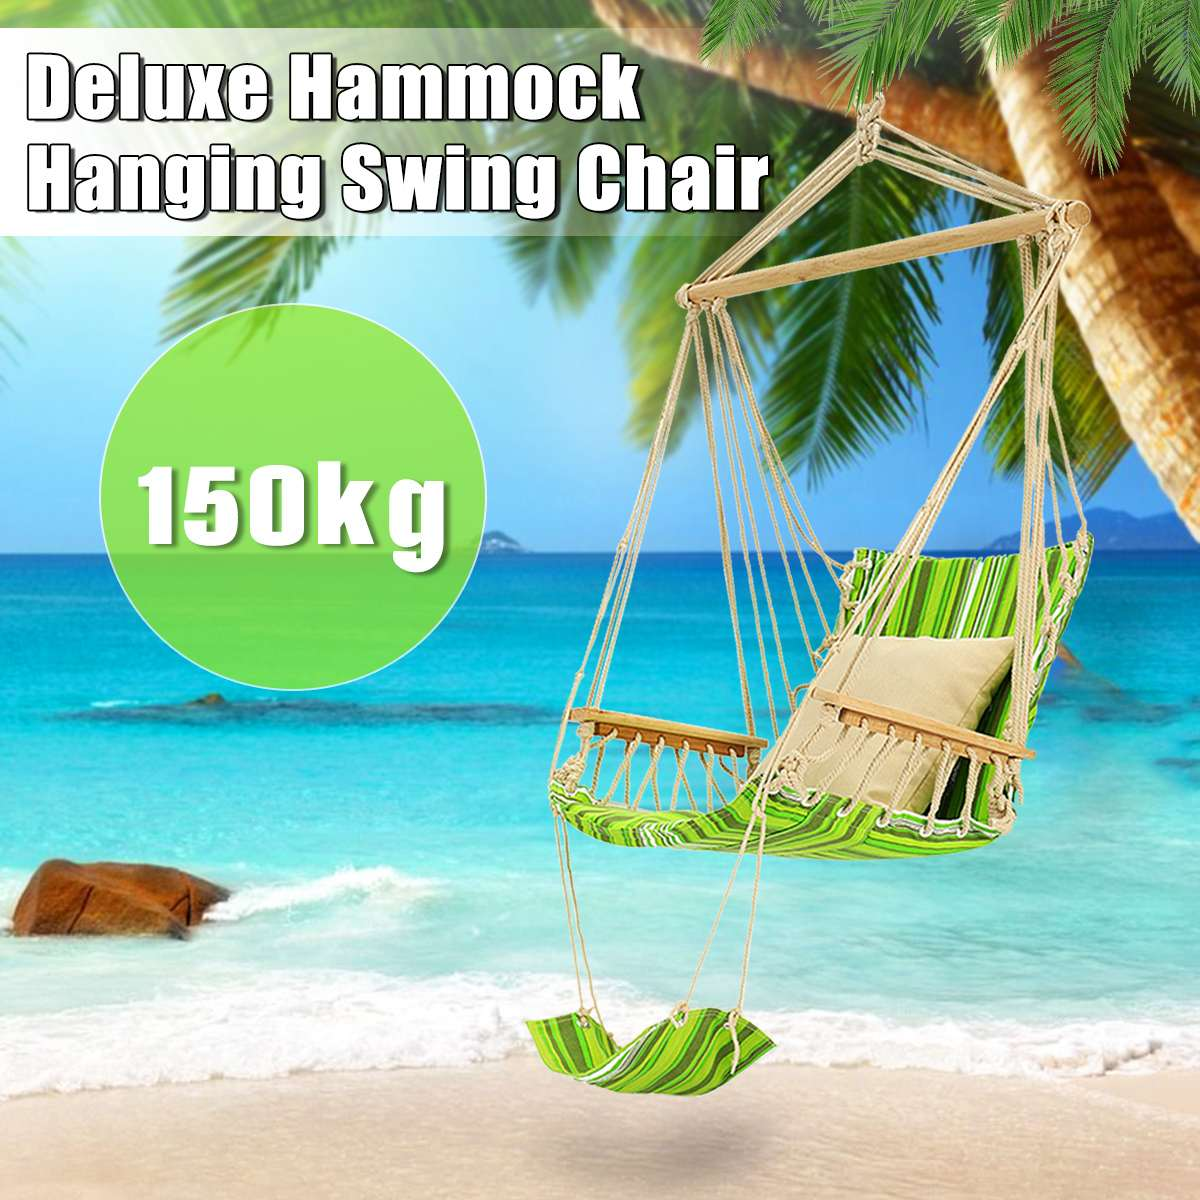 Hot Sale SGODDE Swing Hammock Hanging Chair Air Outdoor Garden Beach Patio Yard Tree 330Lbs Max Tree Hanging HammocksHot Sale SGODDE Swing Hammock Hanging Chair Air Outdoor Garden Beach Patio Yard Tree 330Lbs Max Tree Hanging Hammocks